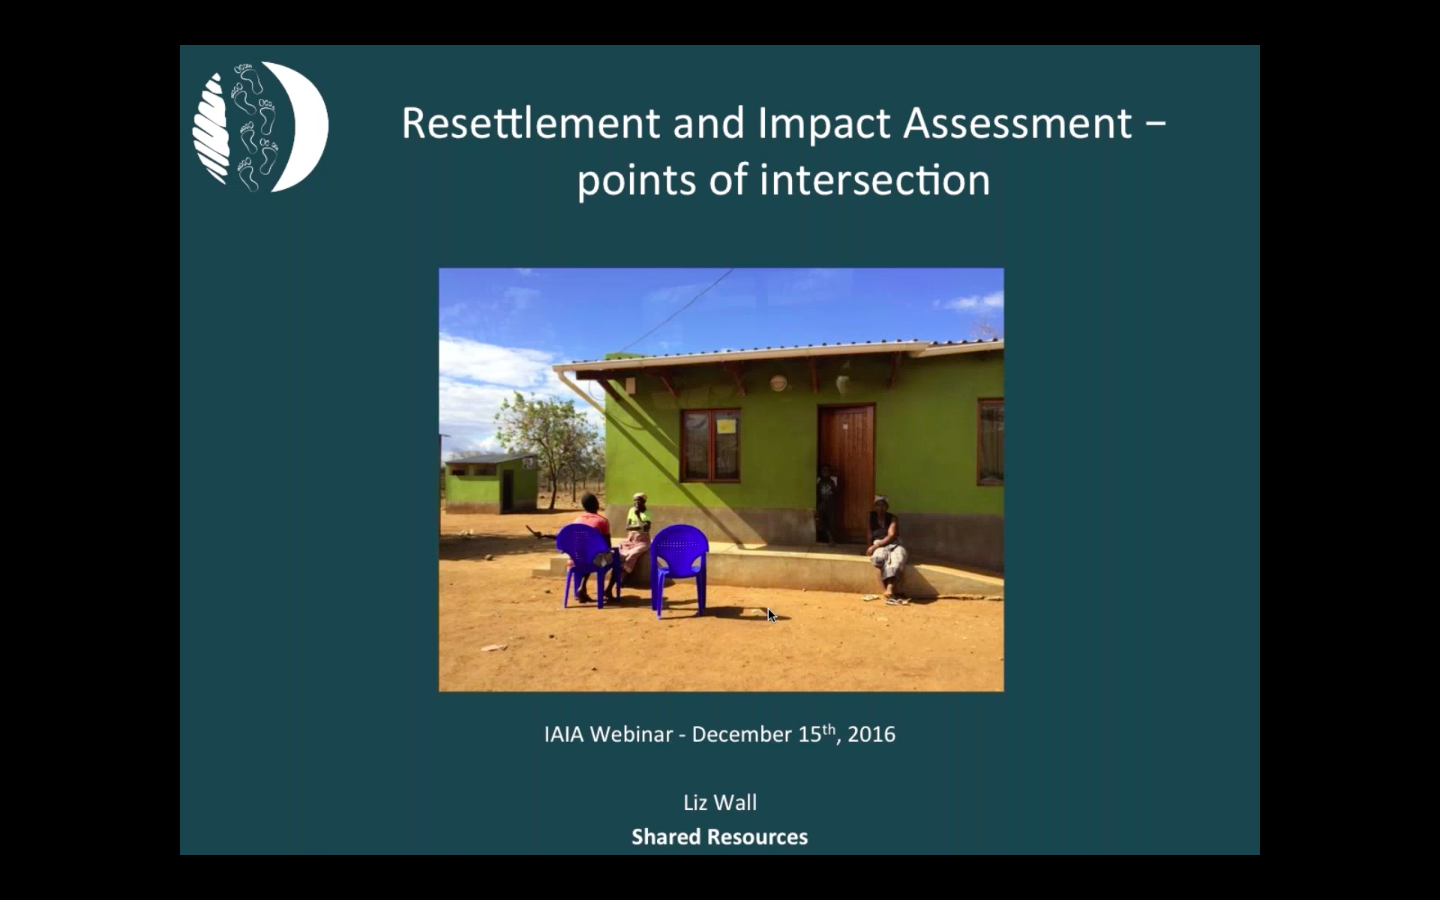 Resettlement and Impact Assessment – Points of Intersection